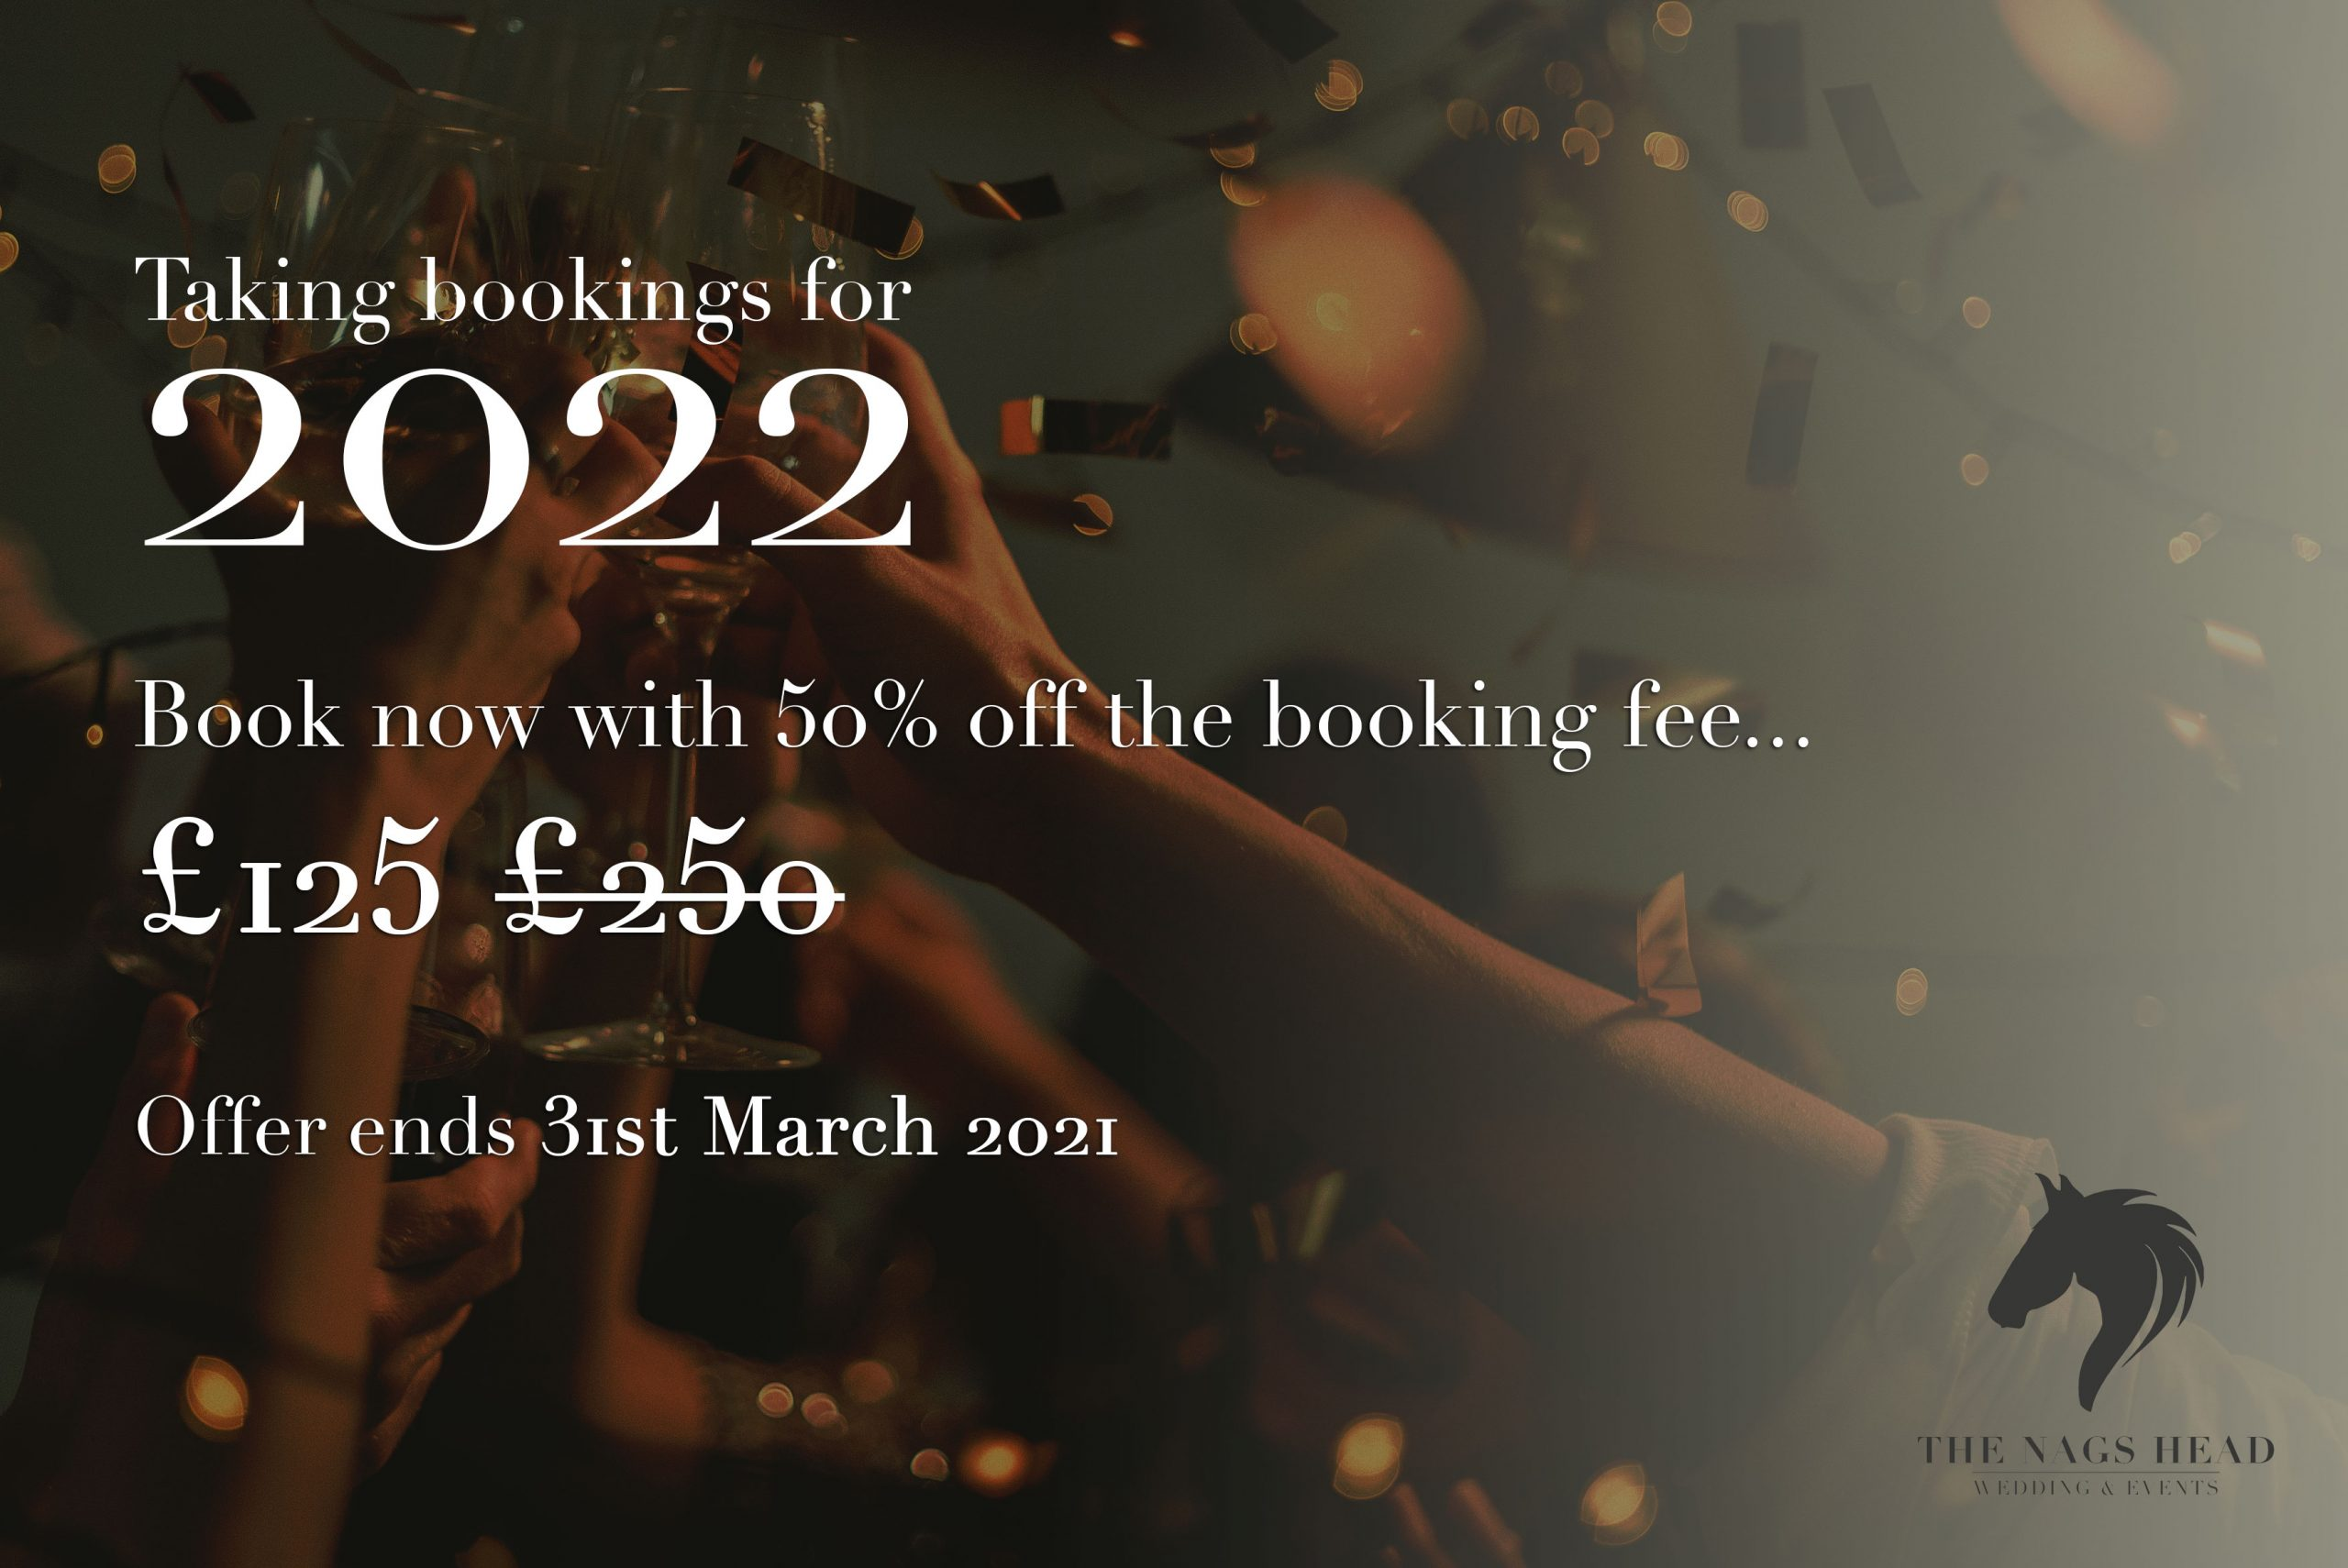 Book now for 2022